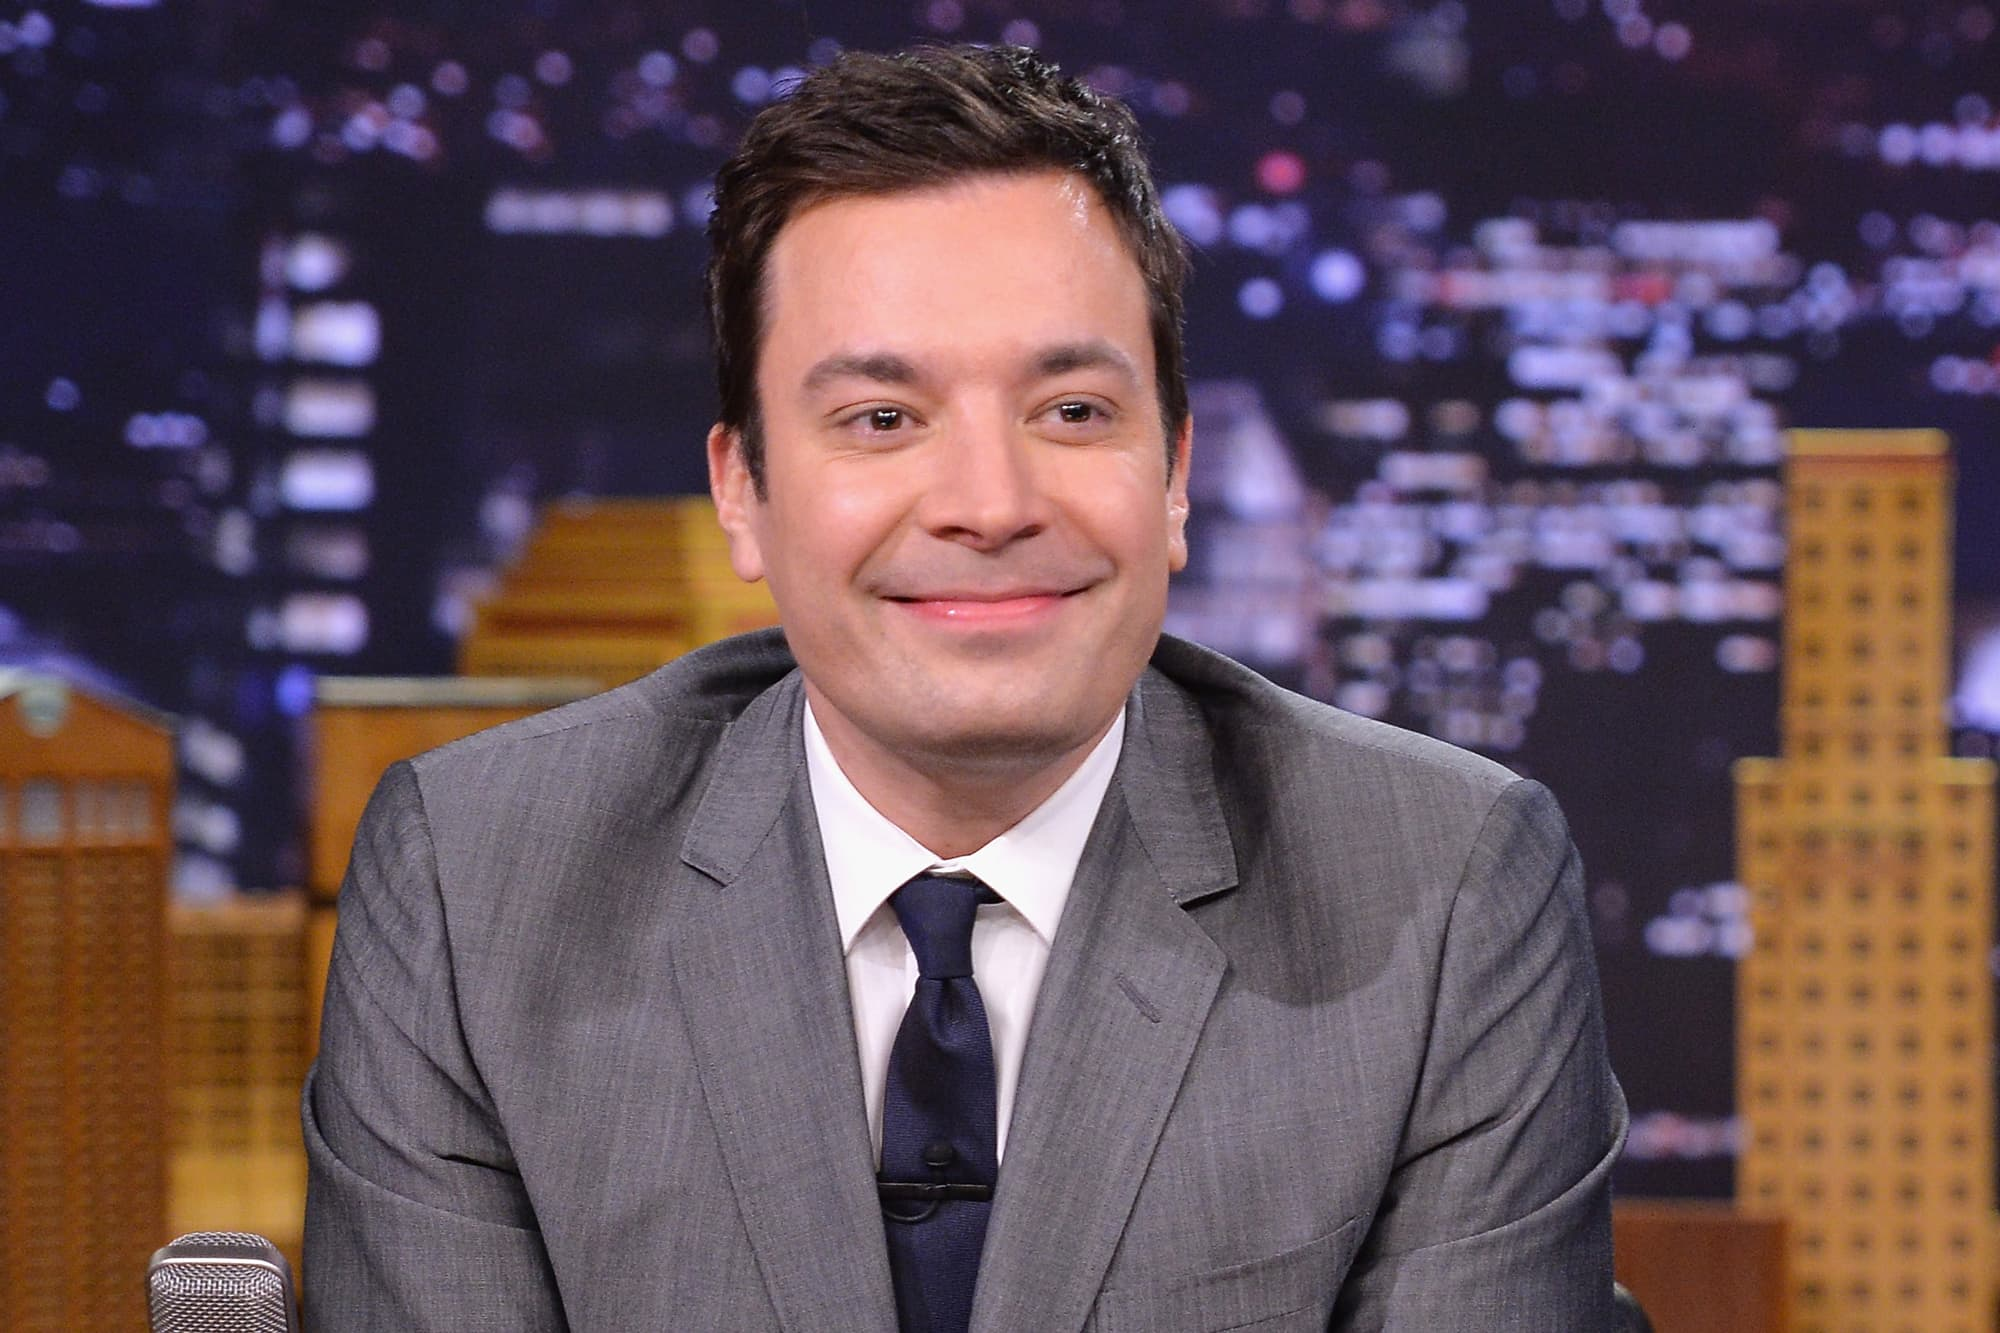 Top 4 Late Night Tv Hosts Make Millions Of Dollars A Year